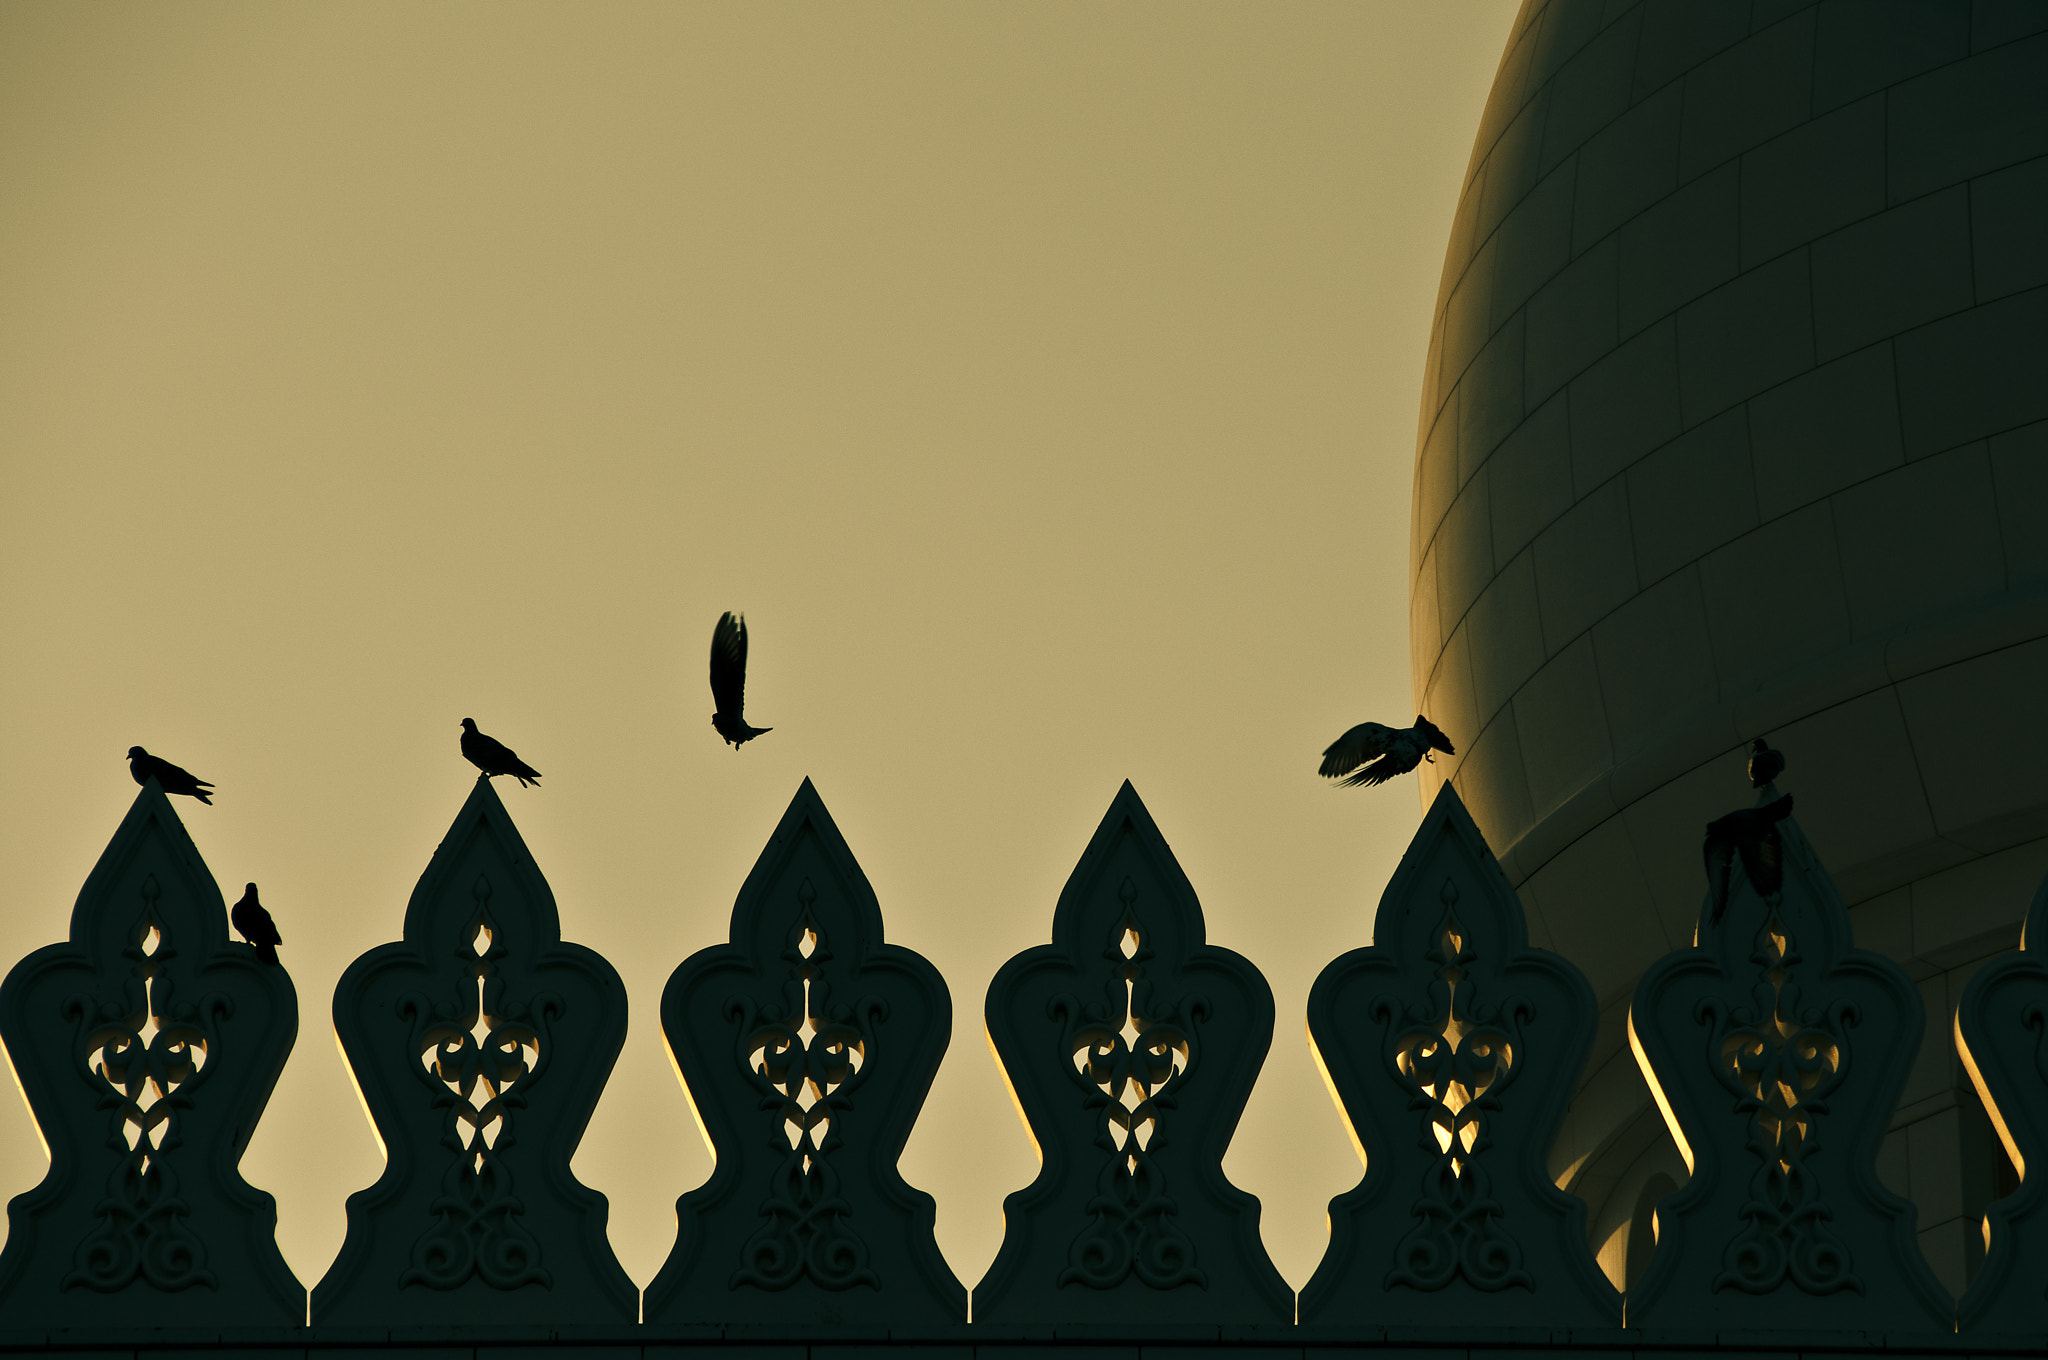 Photograph Pece on the Mosque by O Al Zubaidi on 500px